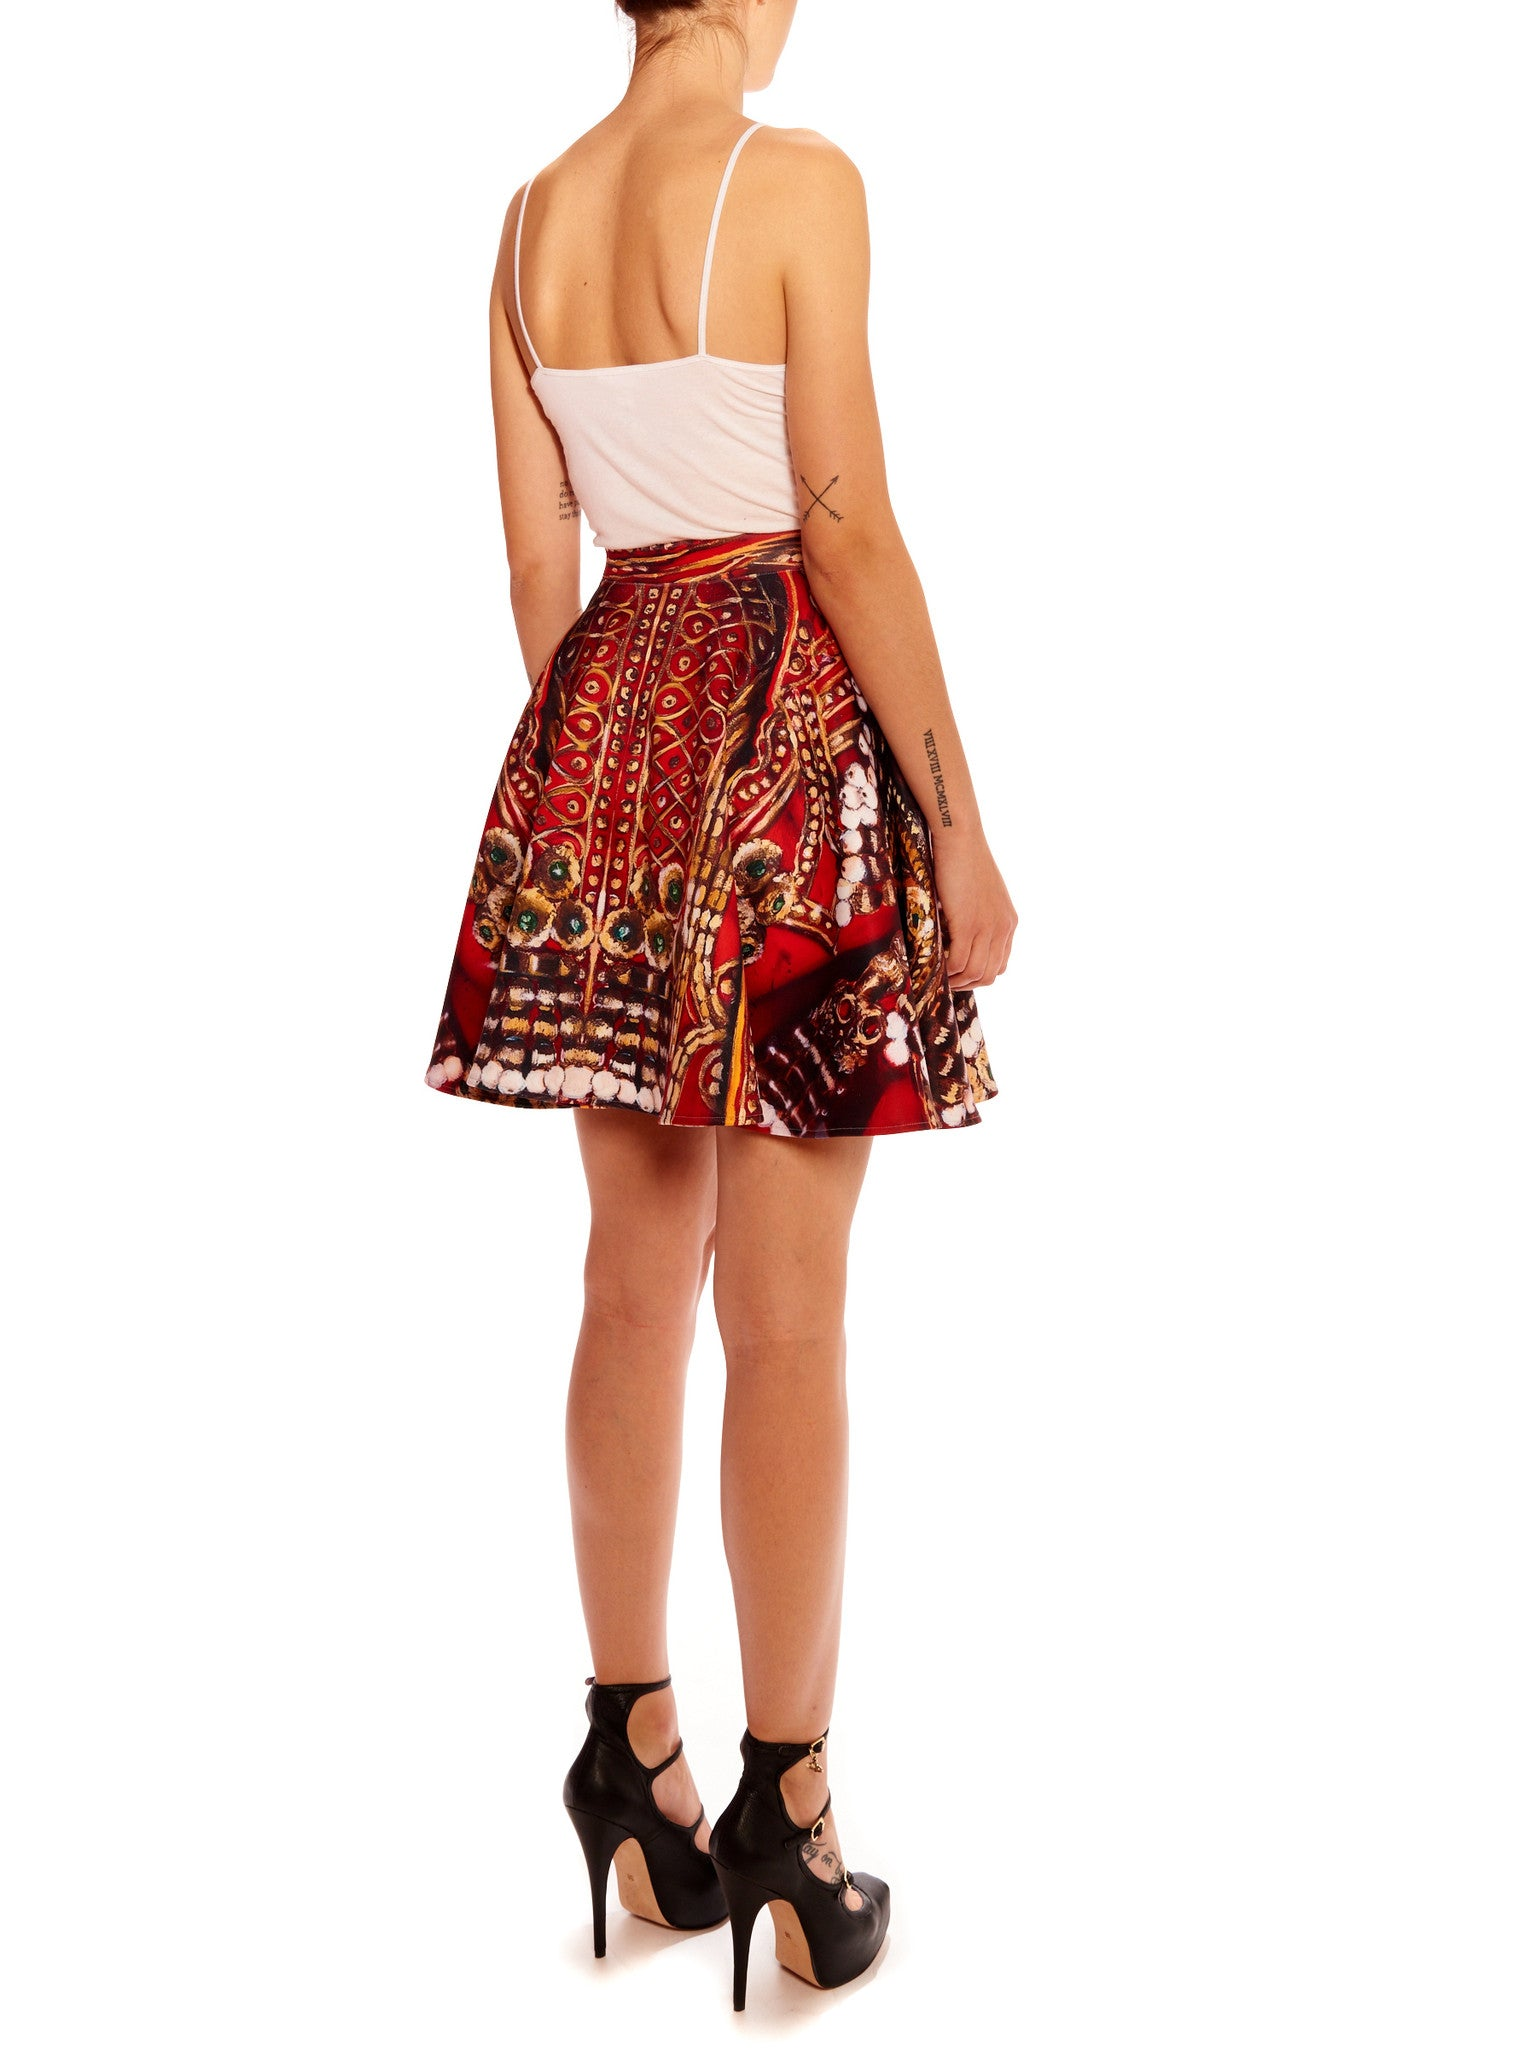 Matador Scuba Circle Skirt - Nuvango Gallery & Goods - 3